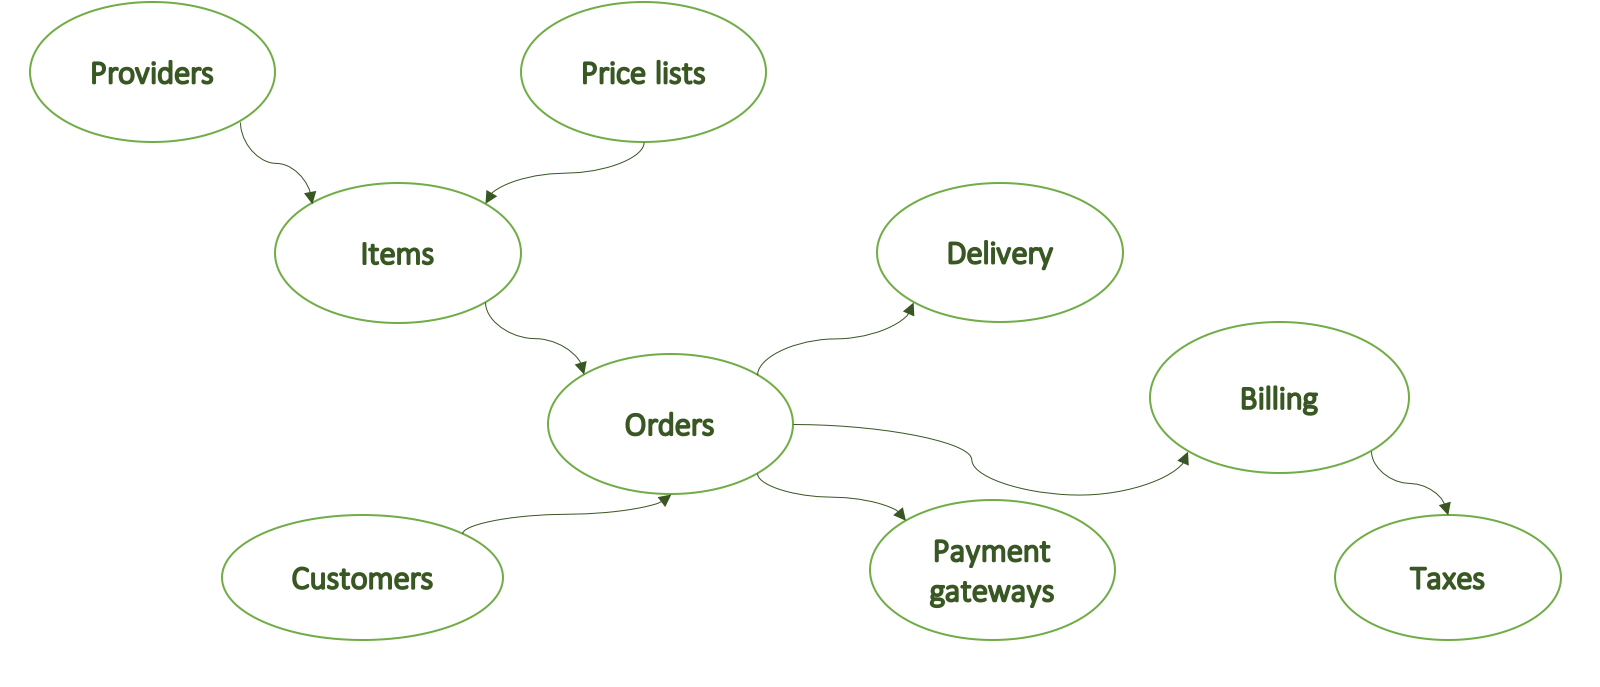 A context map example for this domain